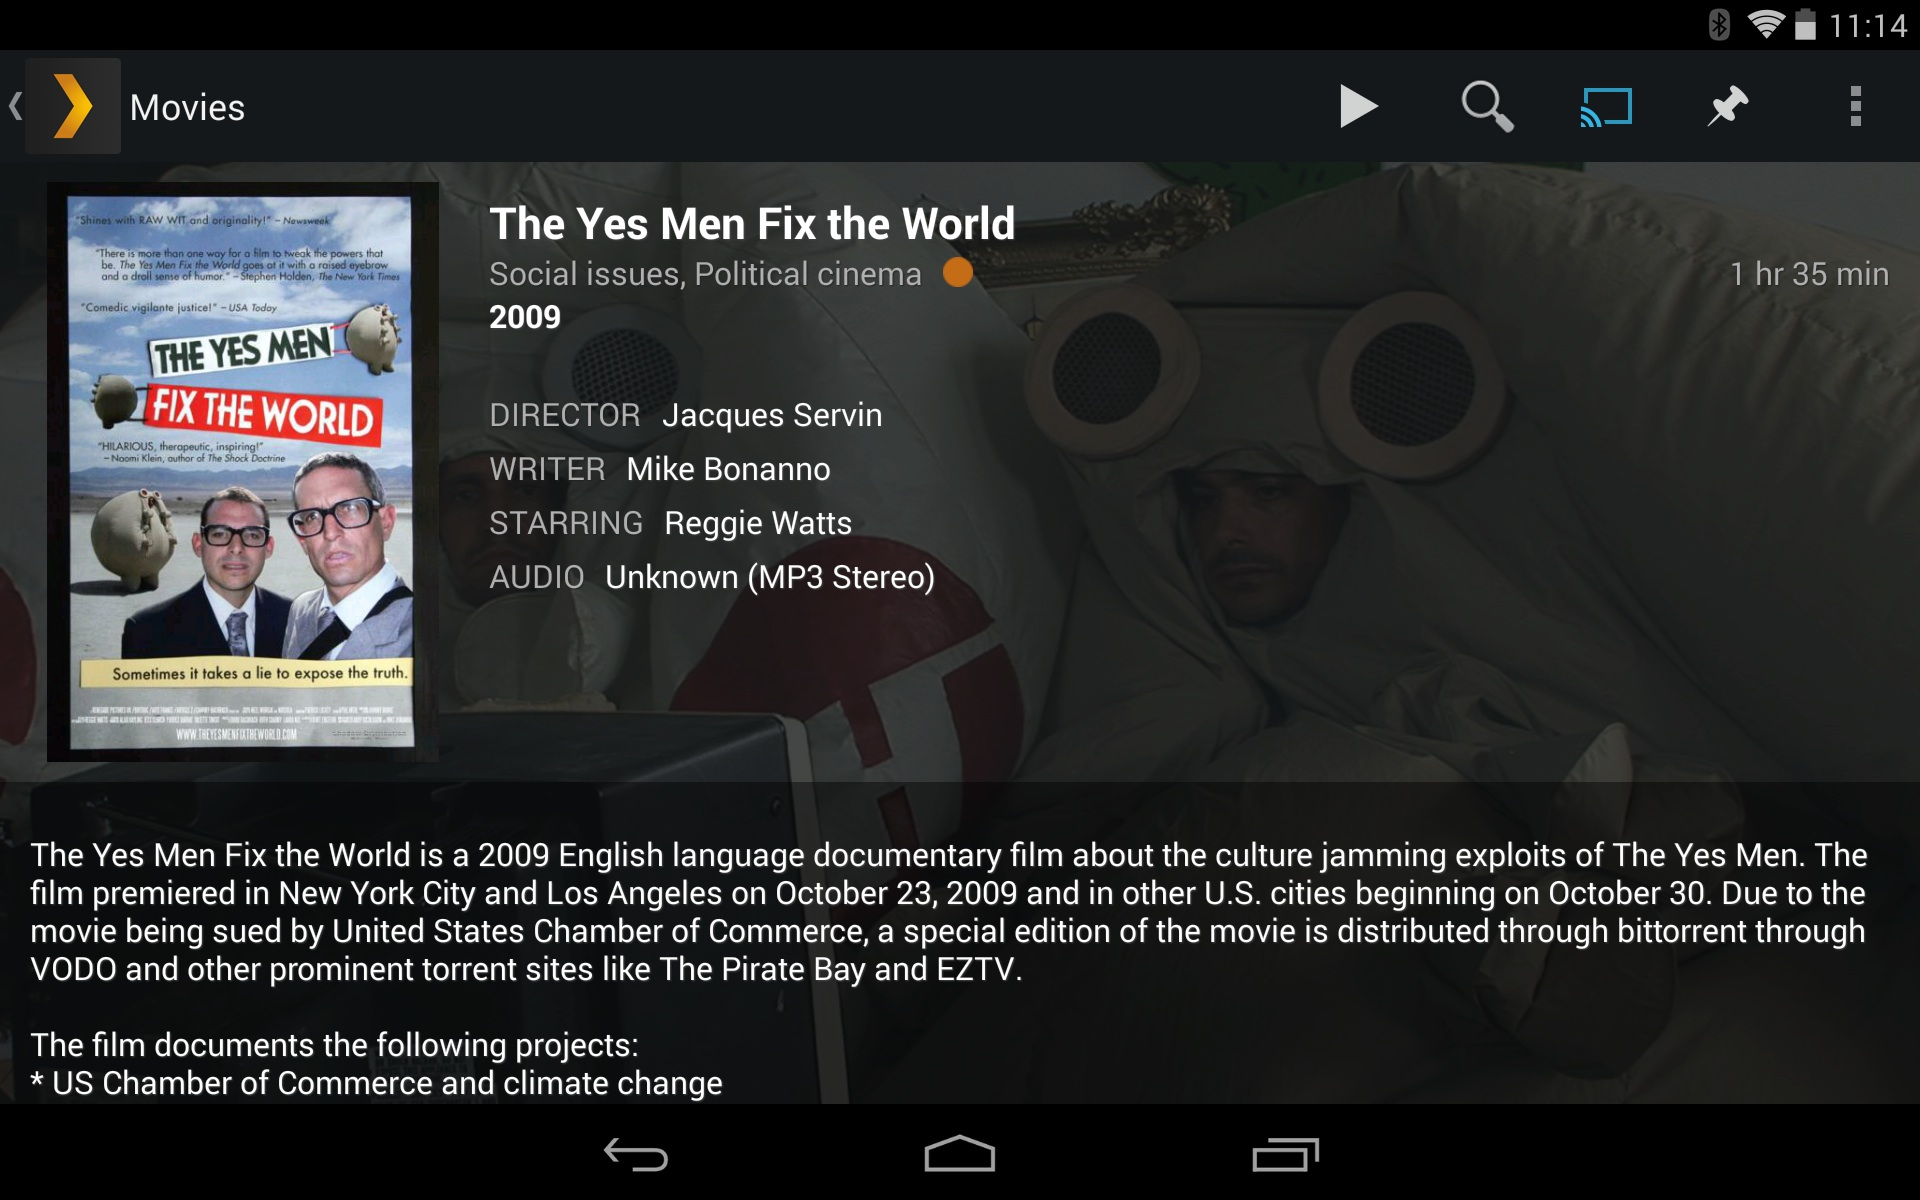 Plex is great for playing homemade or downloaded videos on your Chromecast. The Plex server even transcodes videos on the fly that aren't in the right file format.